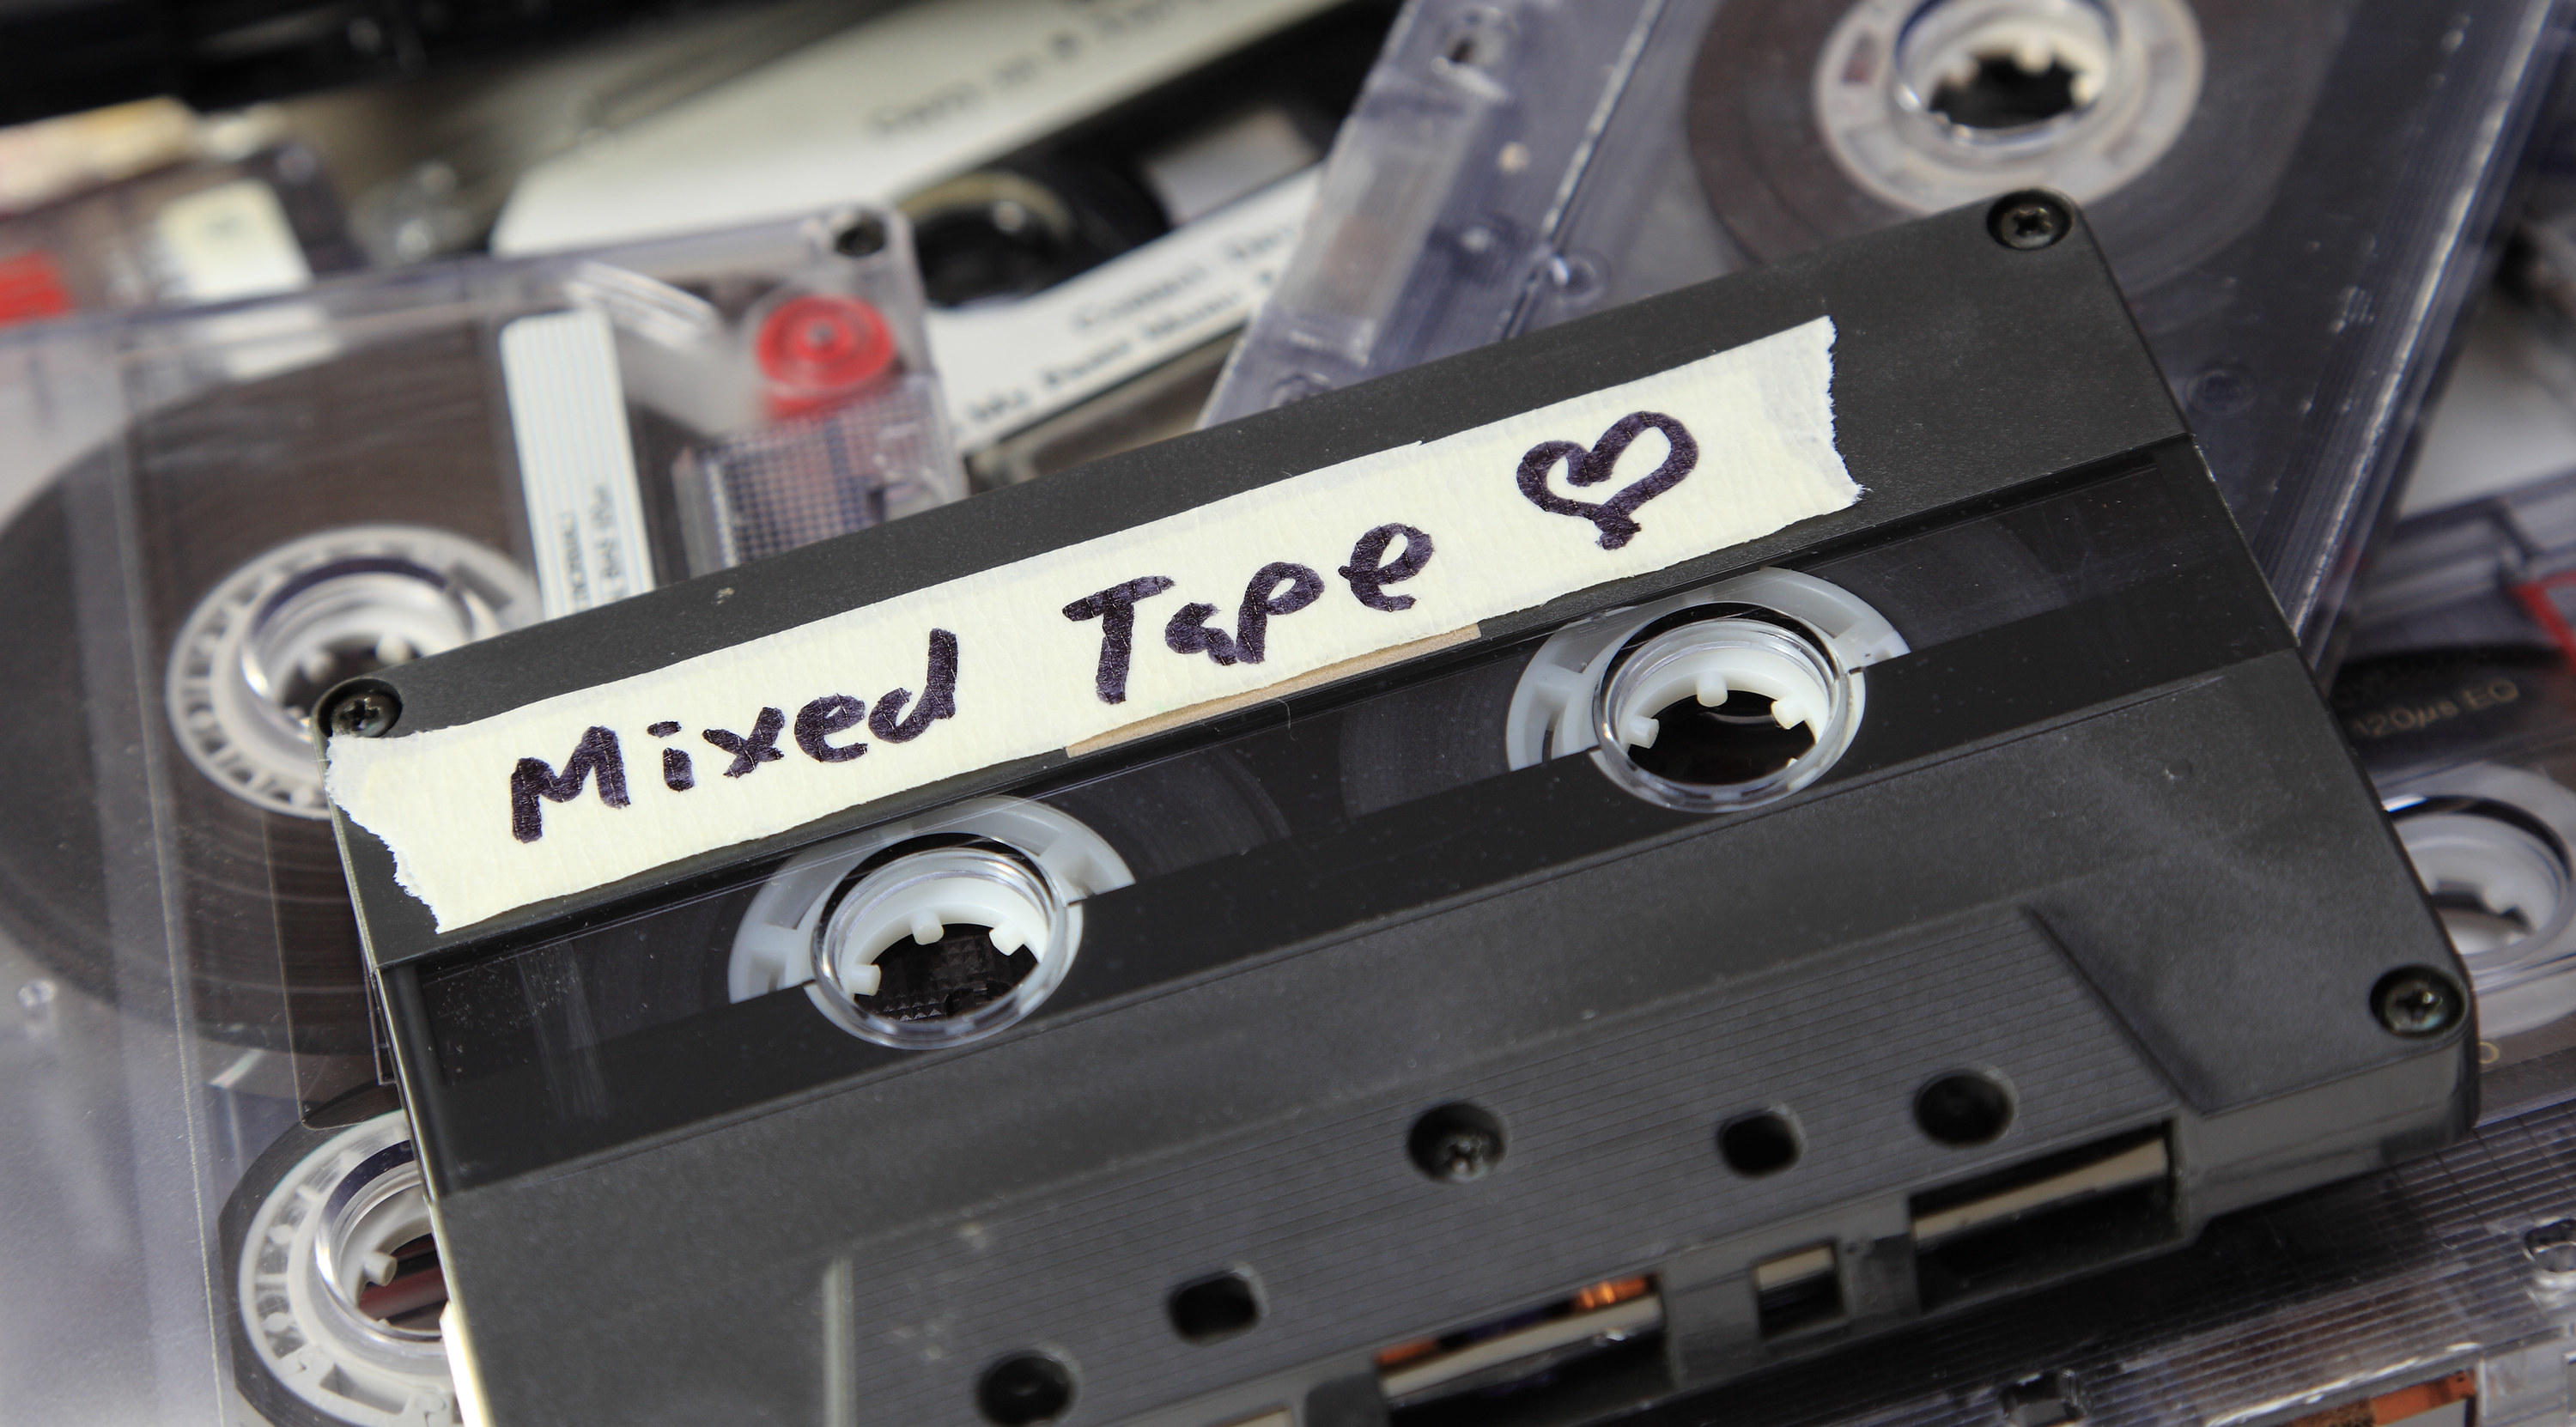 An old mixed tape found amongst a pile of audio cassettes.